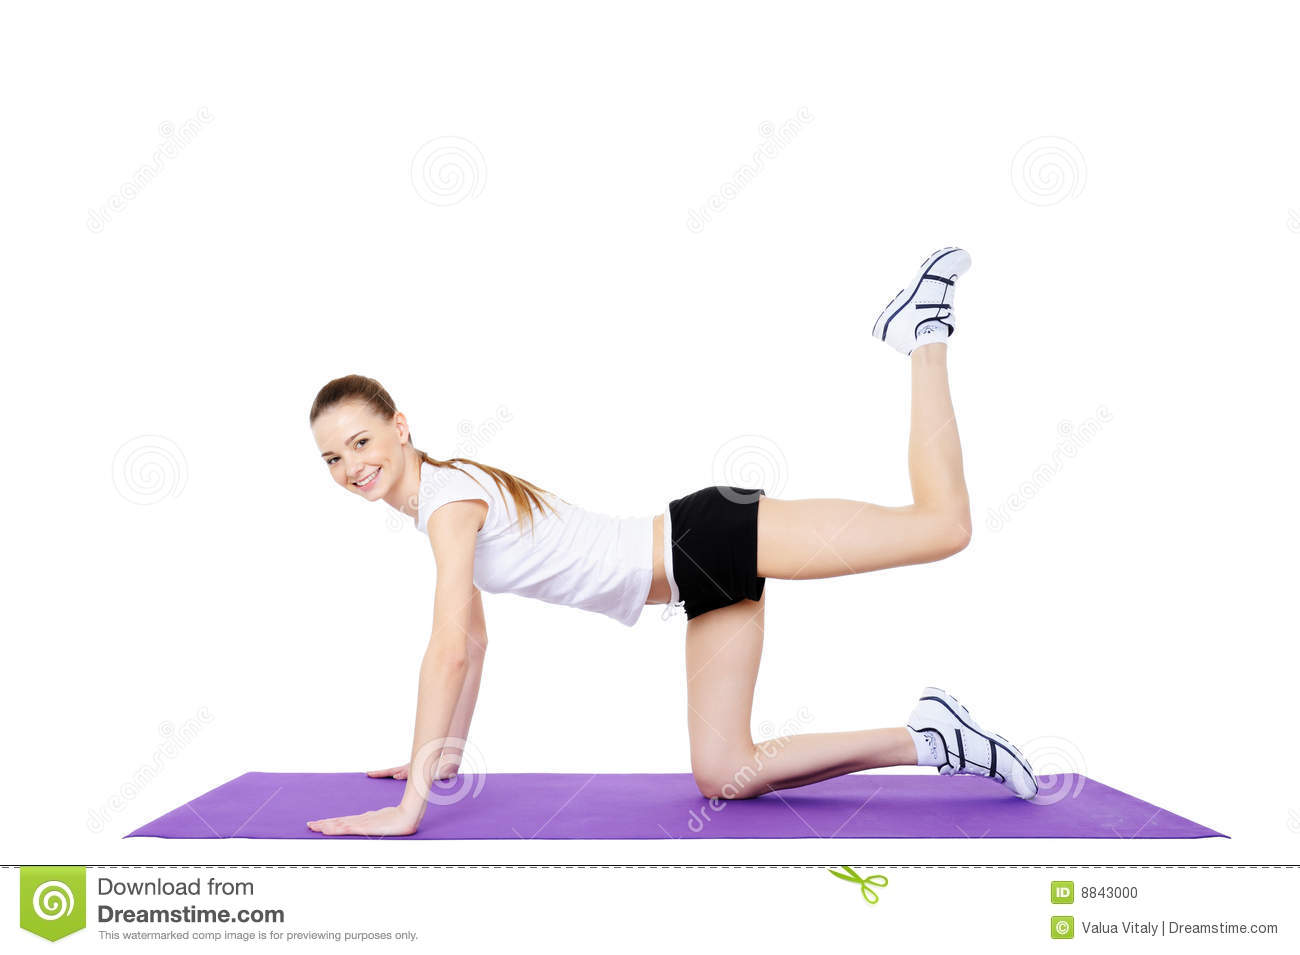 Essay: A method of fitness training for the components of physical ...